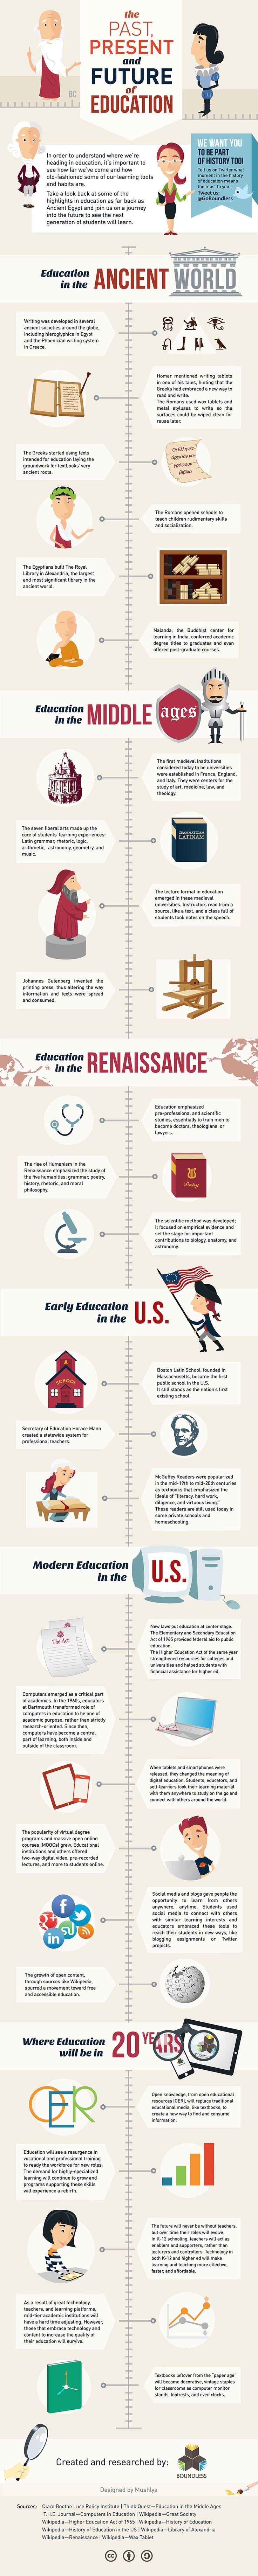 The Past, Present, and Future of Education https://twitter.com/OpusLearning